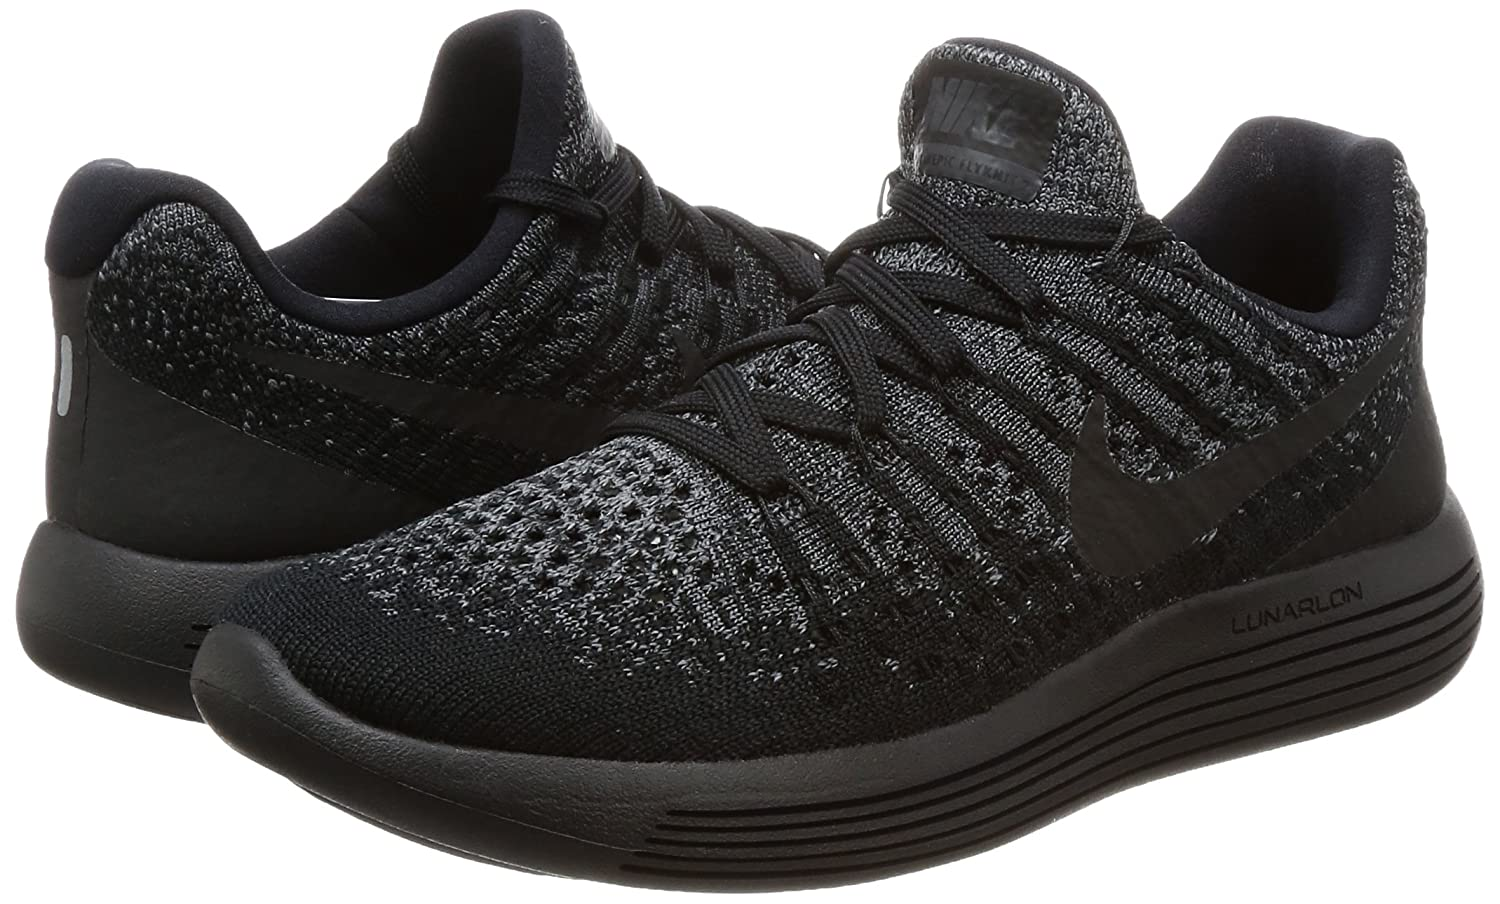 NIKE Women's Lunarepic Low B07468CYLX Flyknit 2 Running Shoe B07468CYLX Low 10.5 B(M) US|Black/Dark Grey/Racer Blue/Black 09cab8